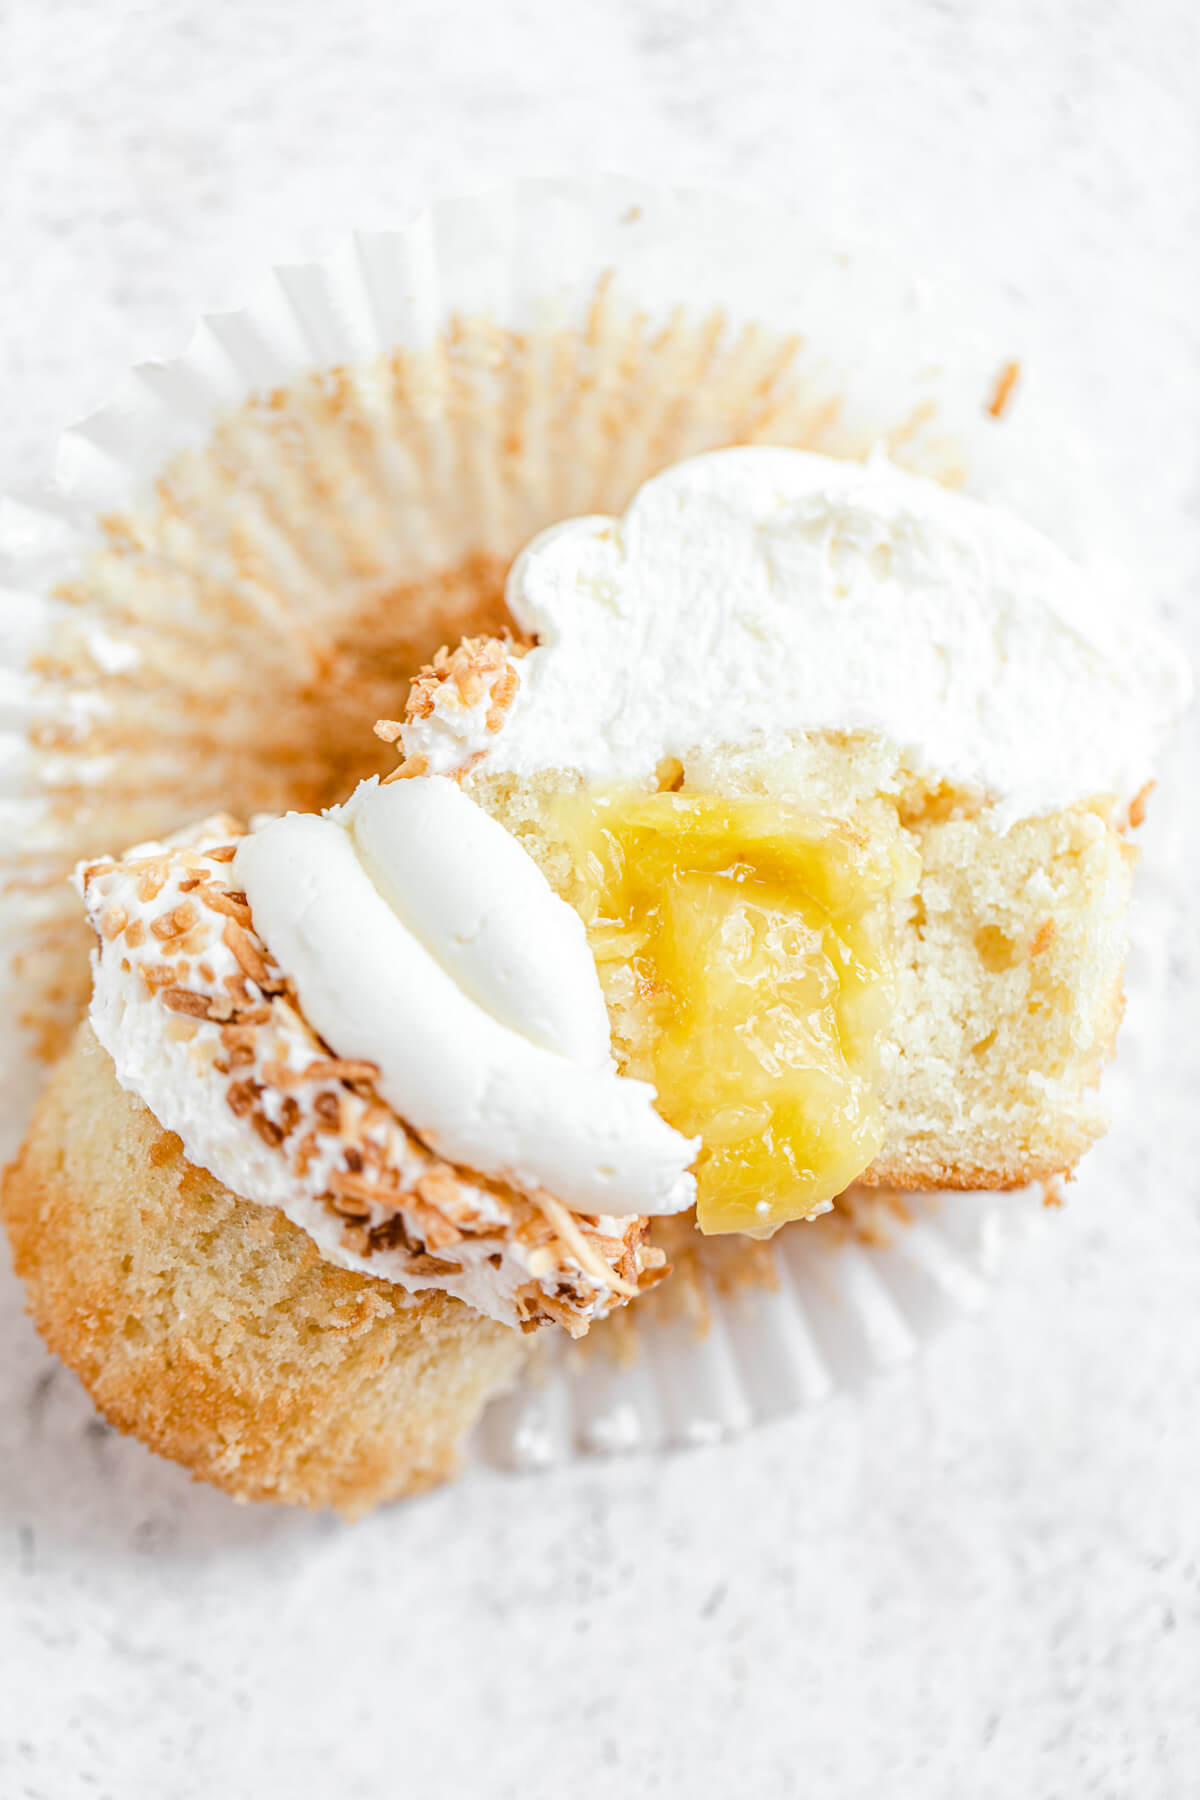 halved cupcake with pineapple filling inside